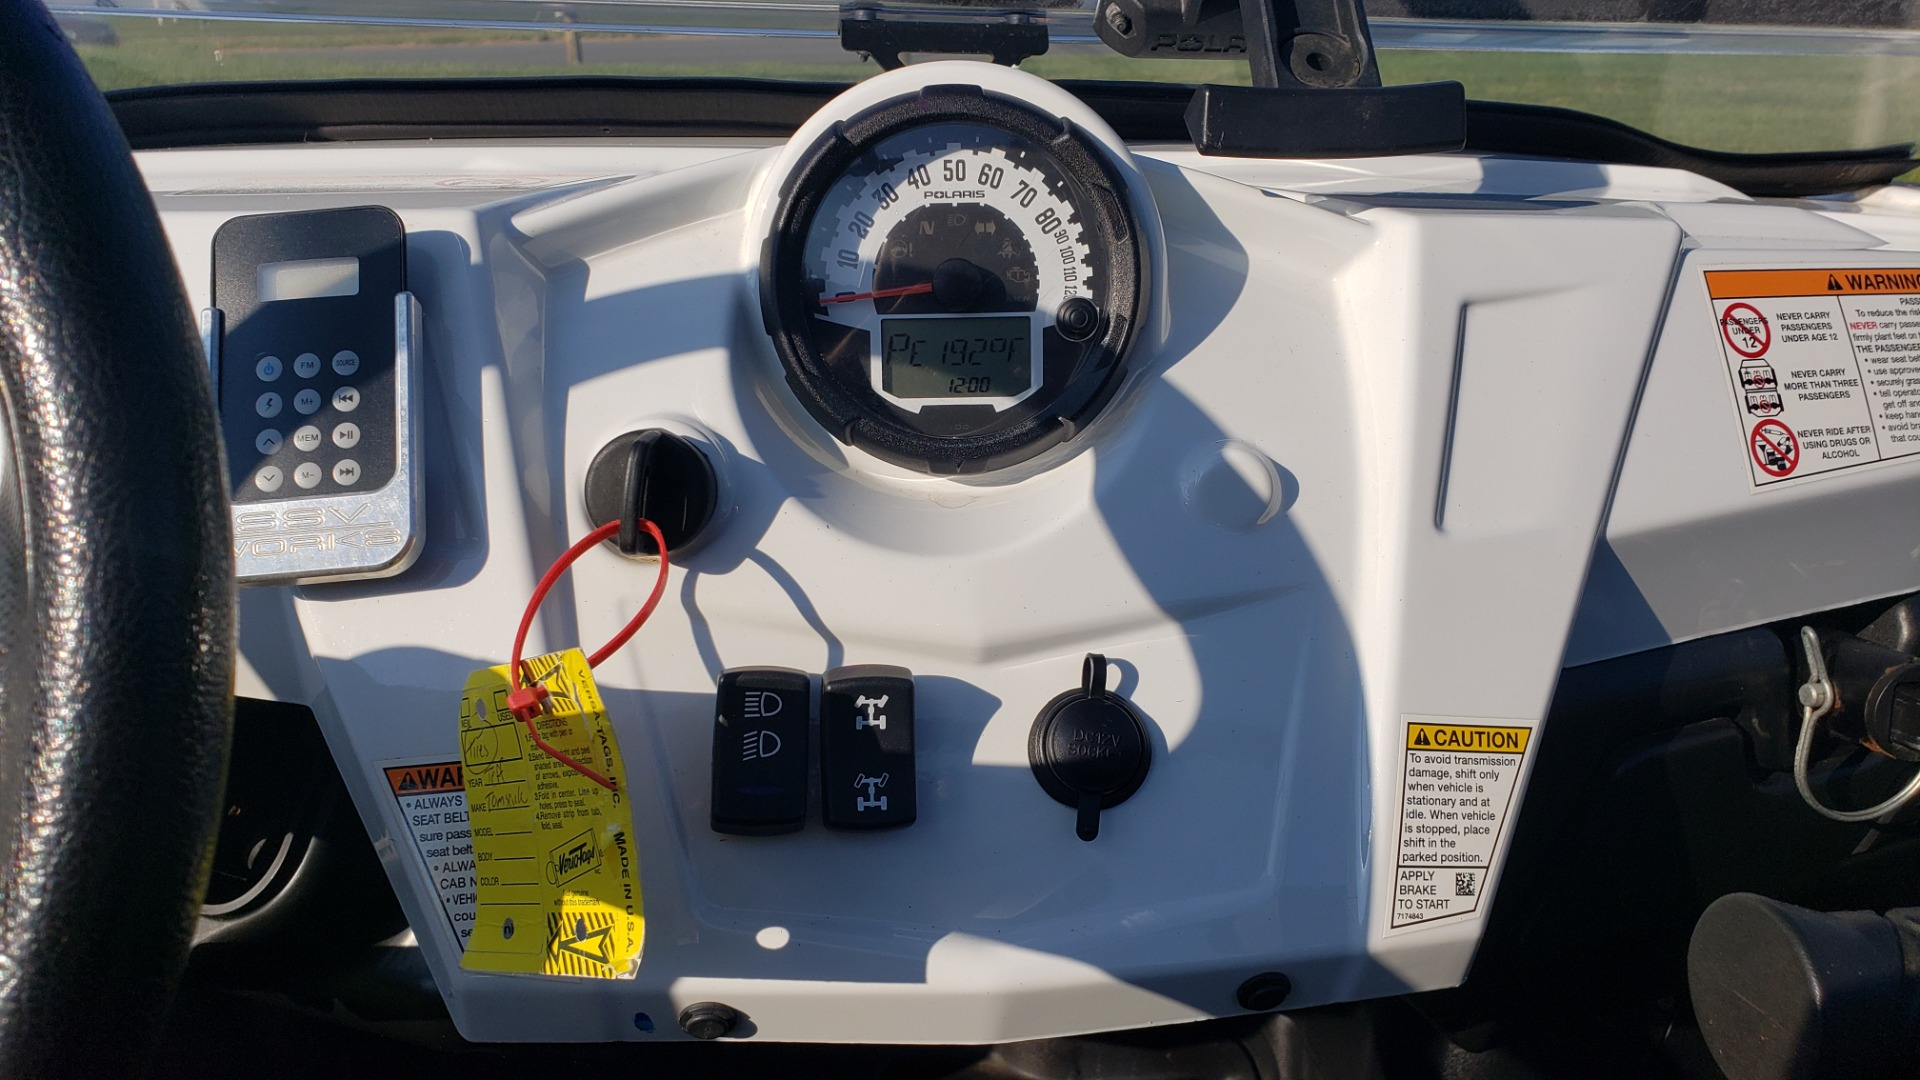 Used 2012 POLARIS RANGER RZR4 / HO 800 EFI / IPHONE CONNECT / SPEAKERS / NEW TIRES for sale Sold at Formula Imports in Charlotte NC 28227 25